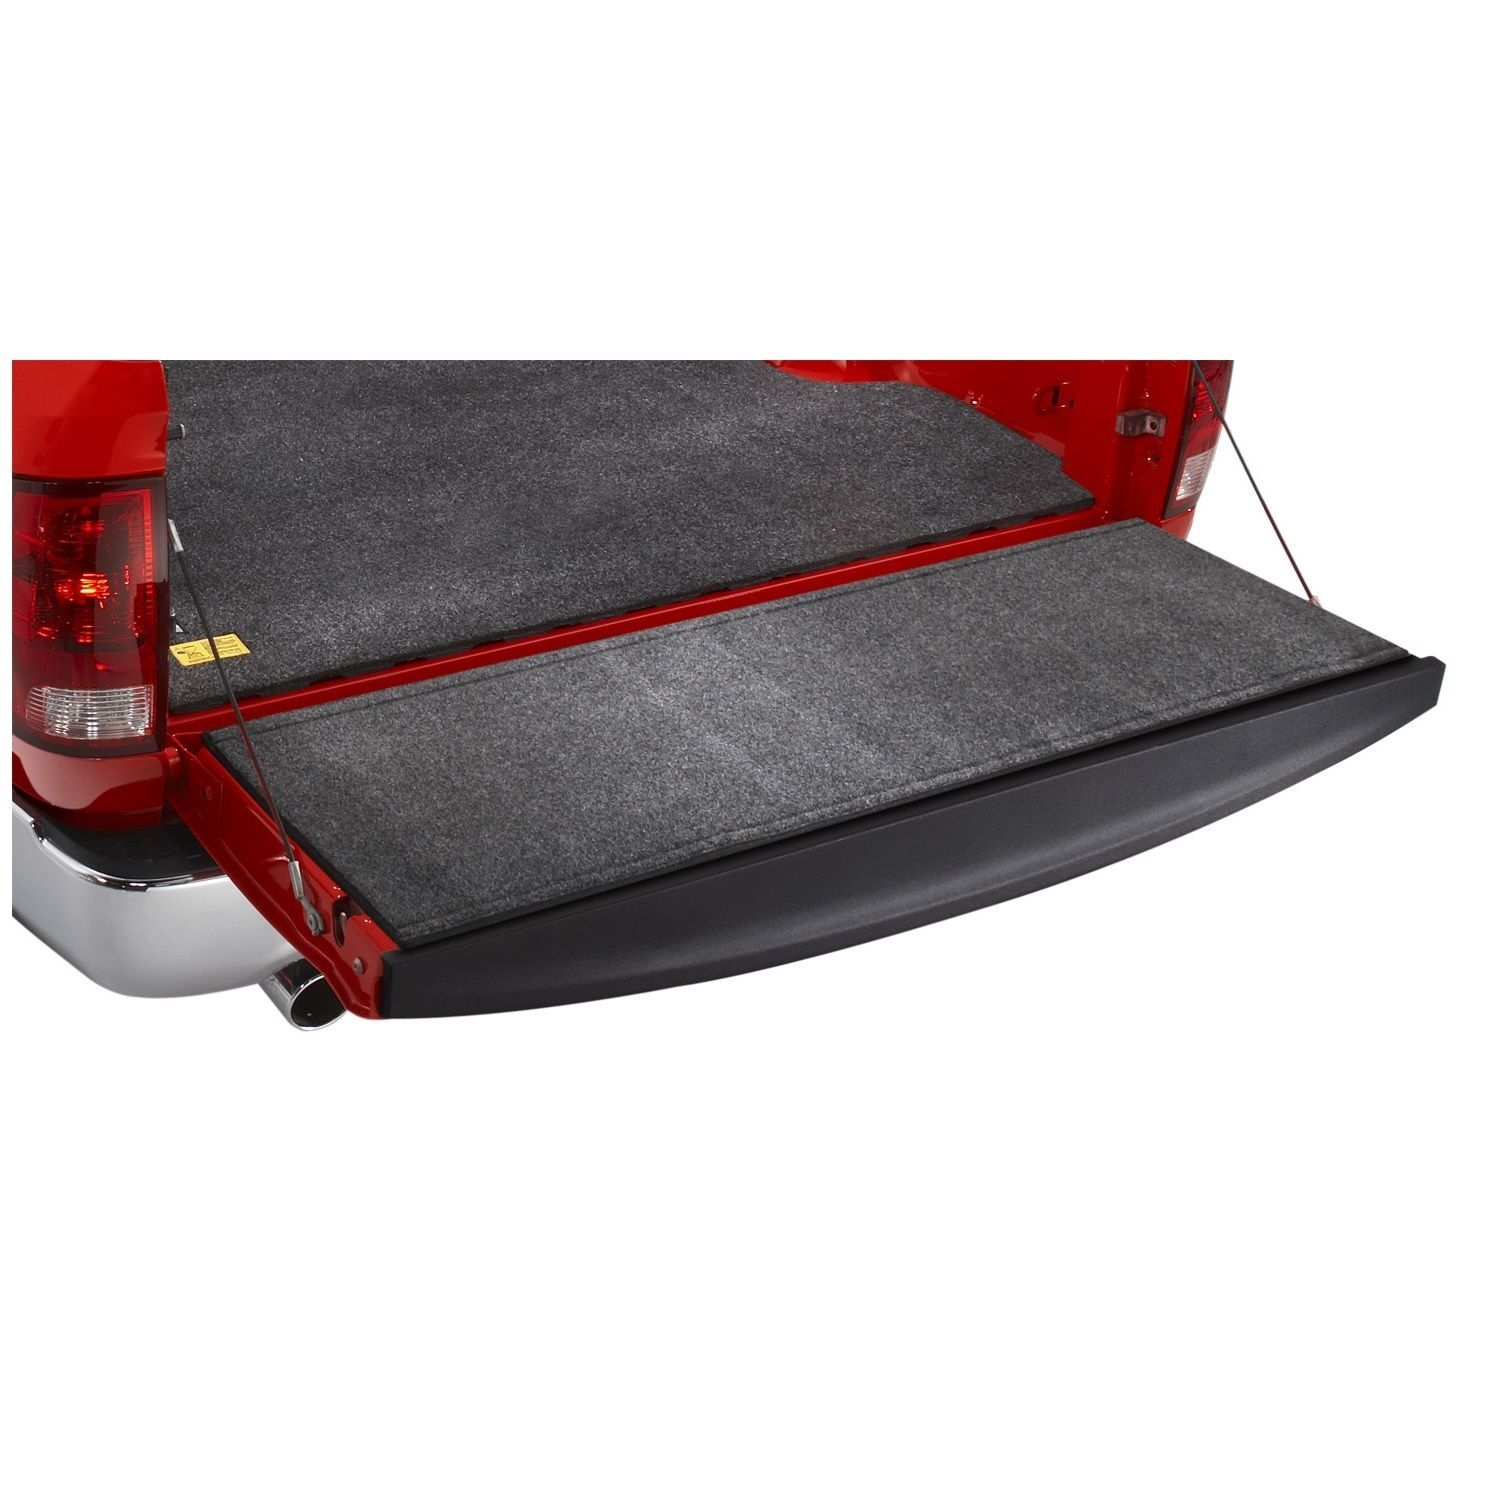 BedRug Tailgate Mat for 20072018 Chevy / GMC Silverado